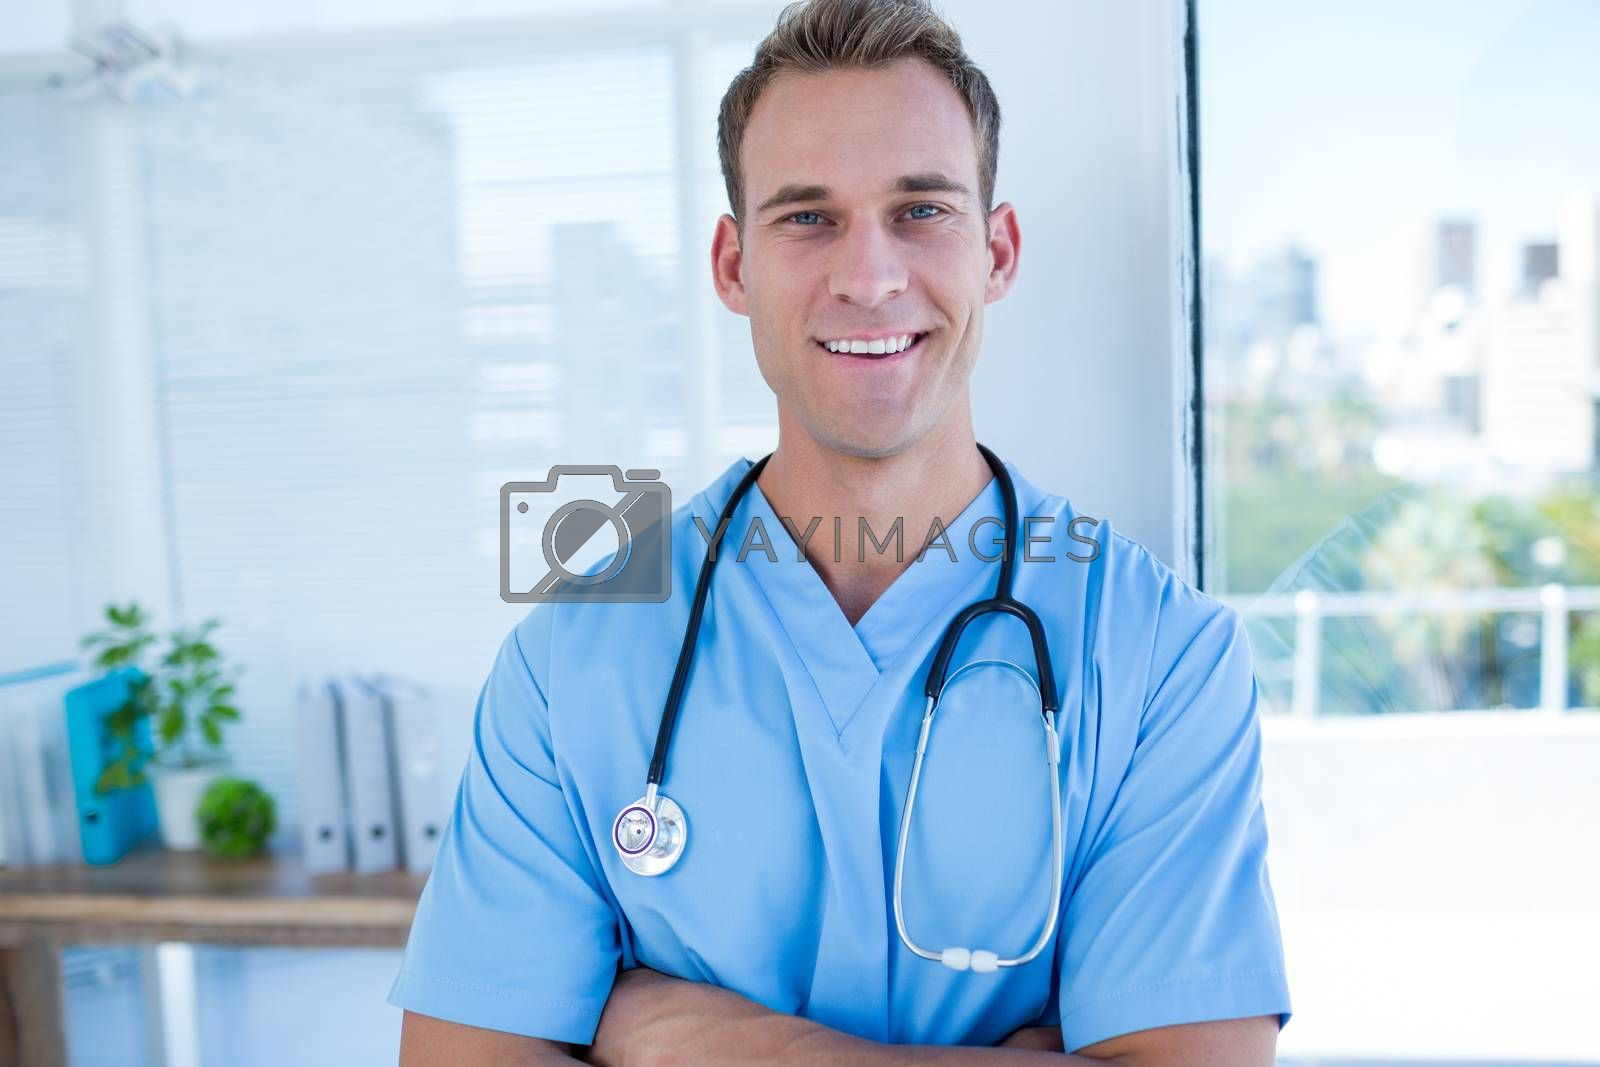 Royalty free image of Smiling doctor looking at the camera by Wavebreakmedia